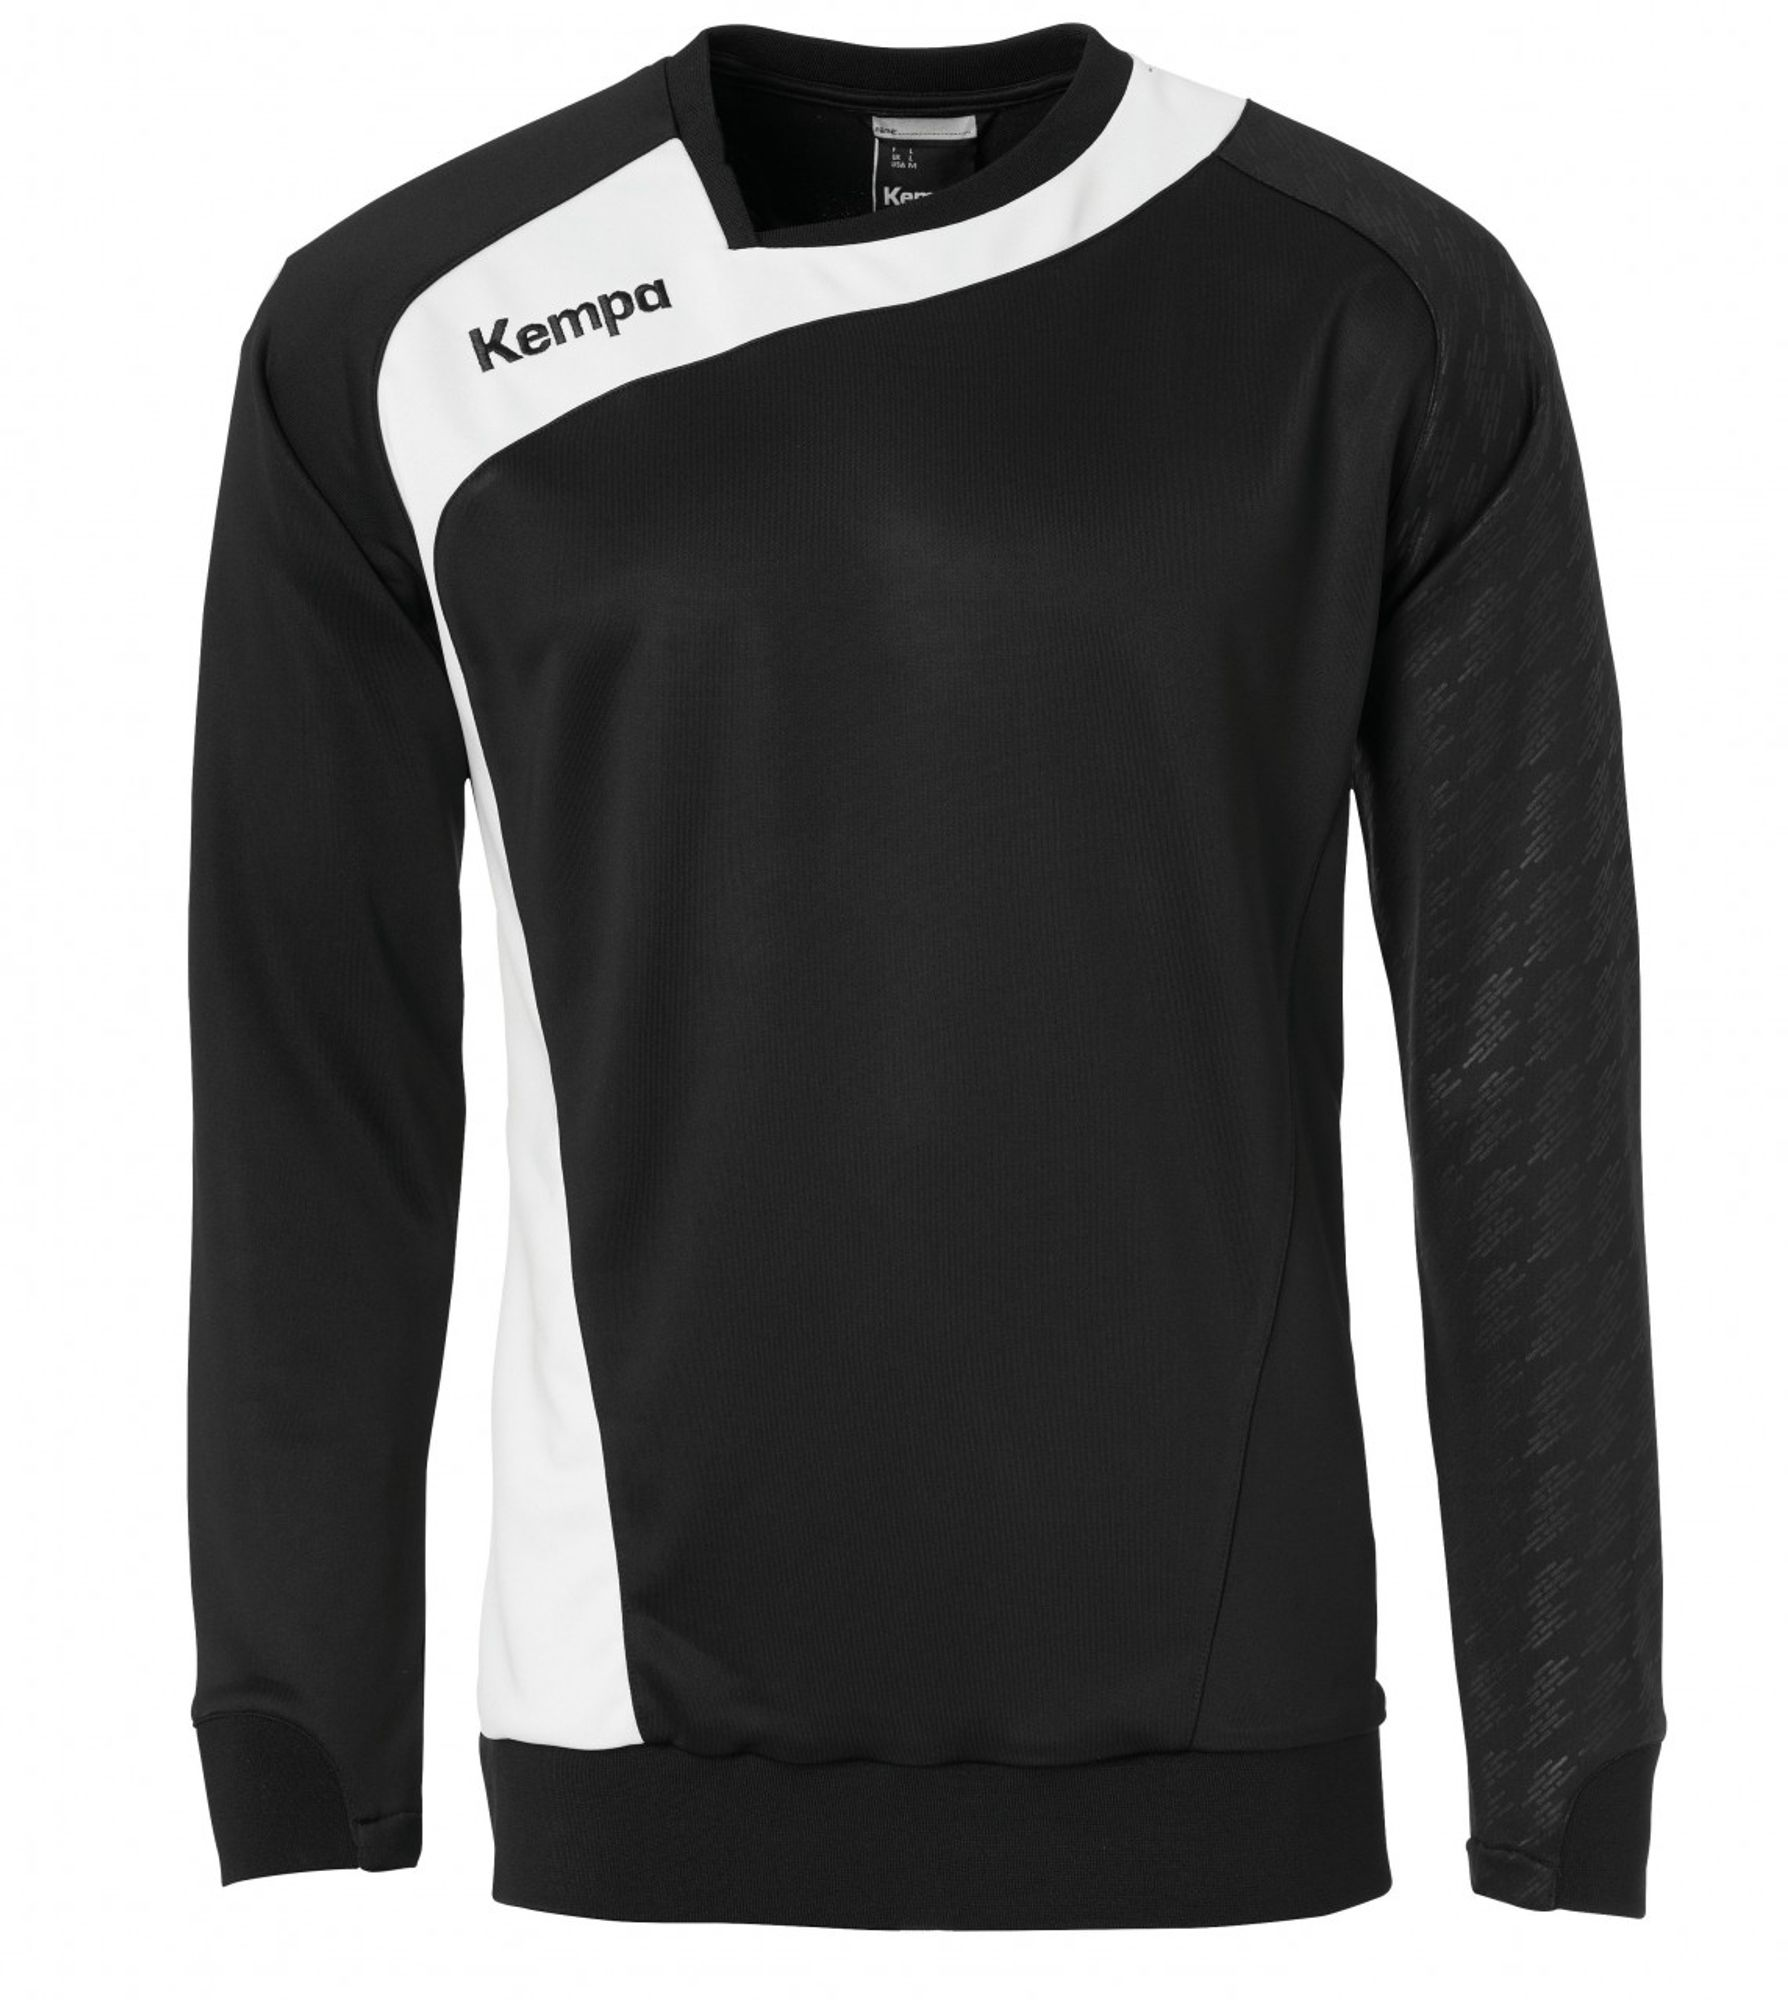 Kempa PEAK TRAINING TOP - schwarz/weiß